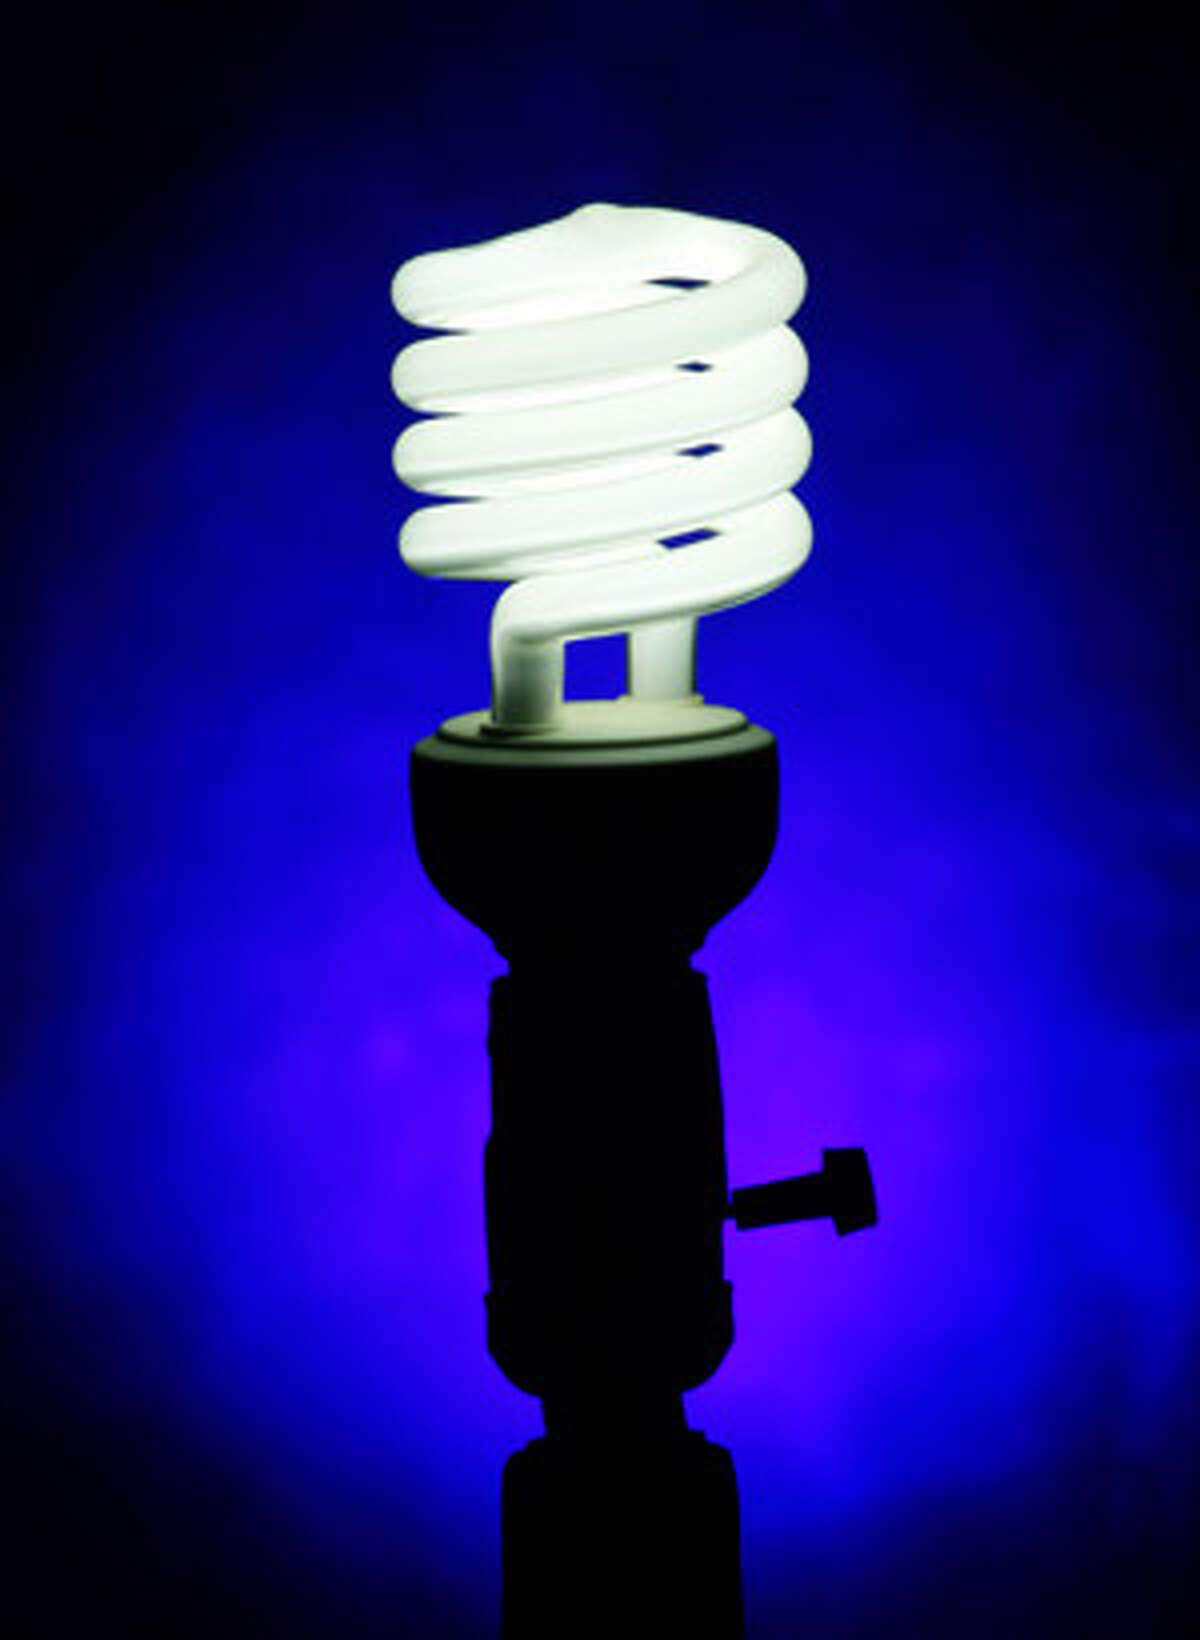 One simple step you can take to start conserving energy in your home is replacing your incandescent lighting in the room you use most with energy efficient, fluorescent lighting.